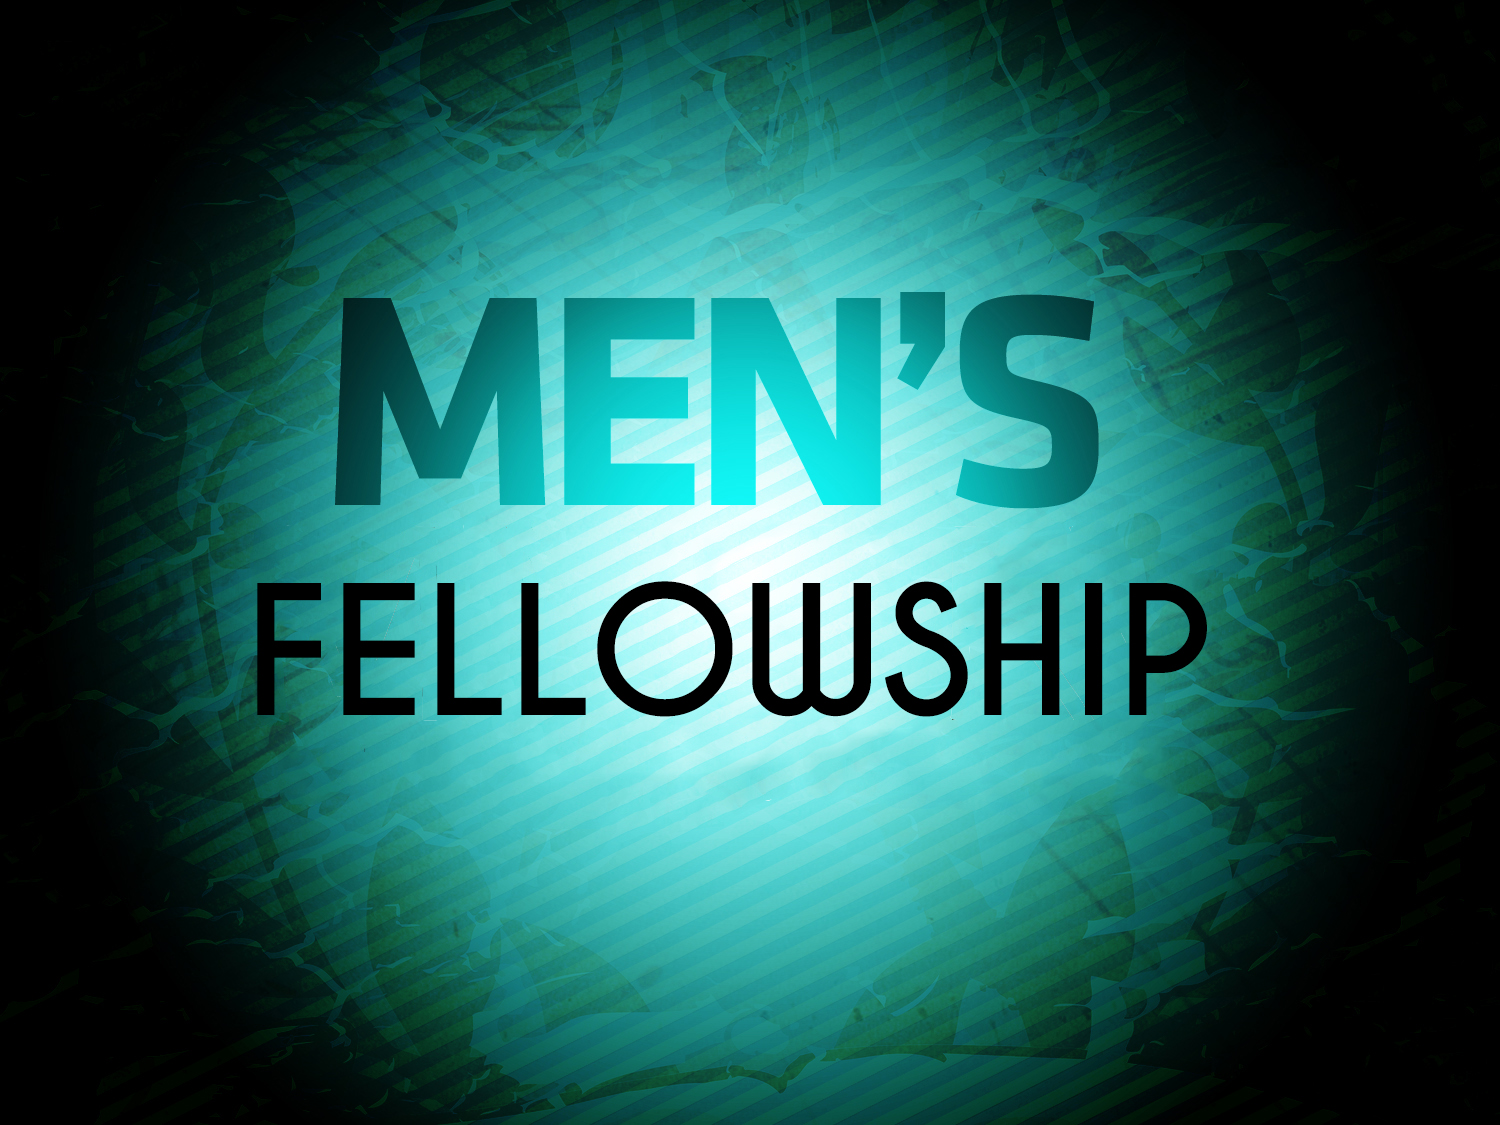 Mens-Fellowship.jpg